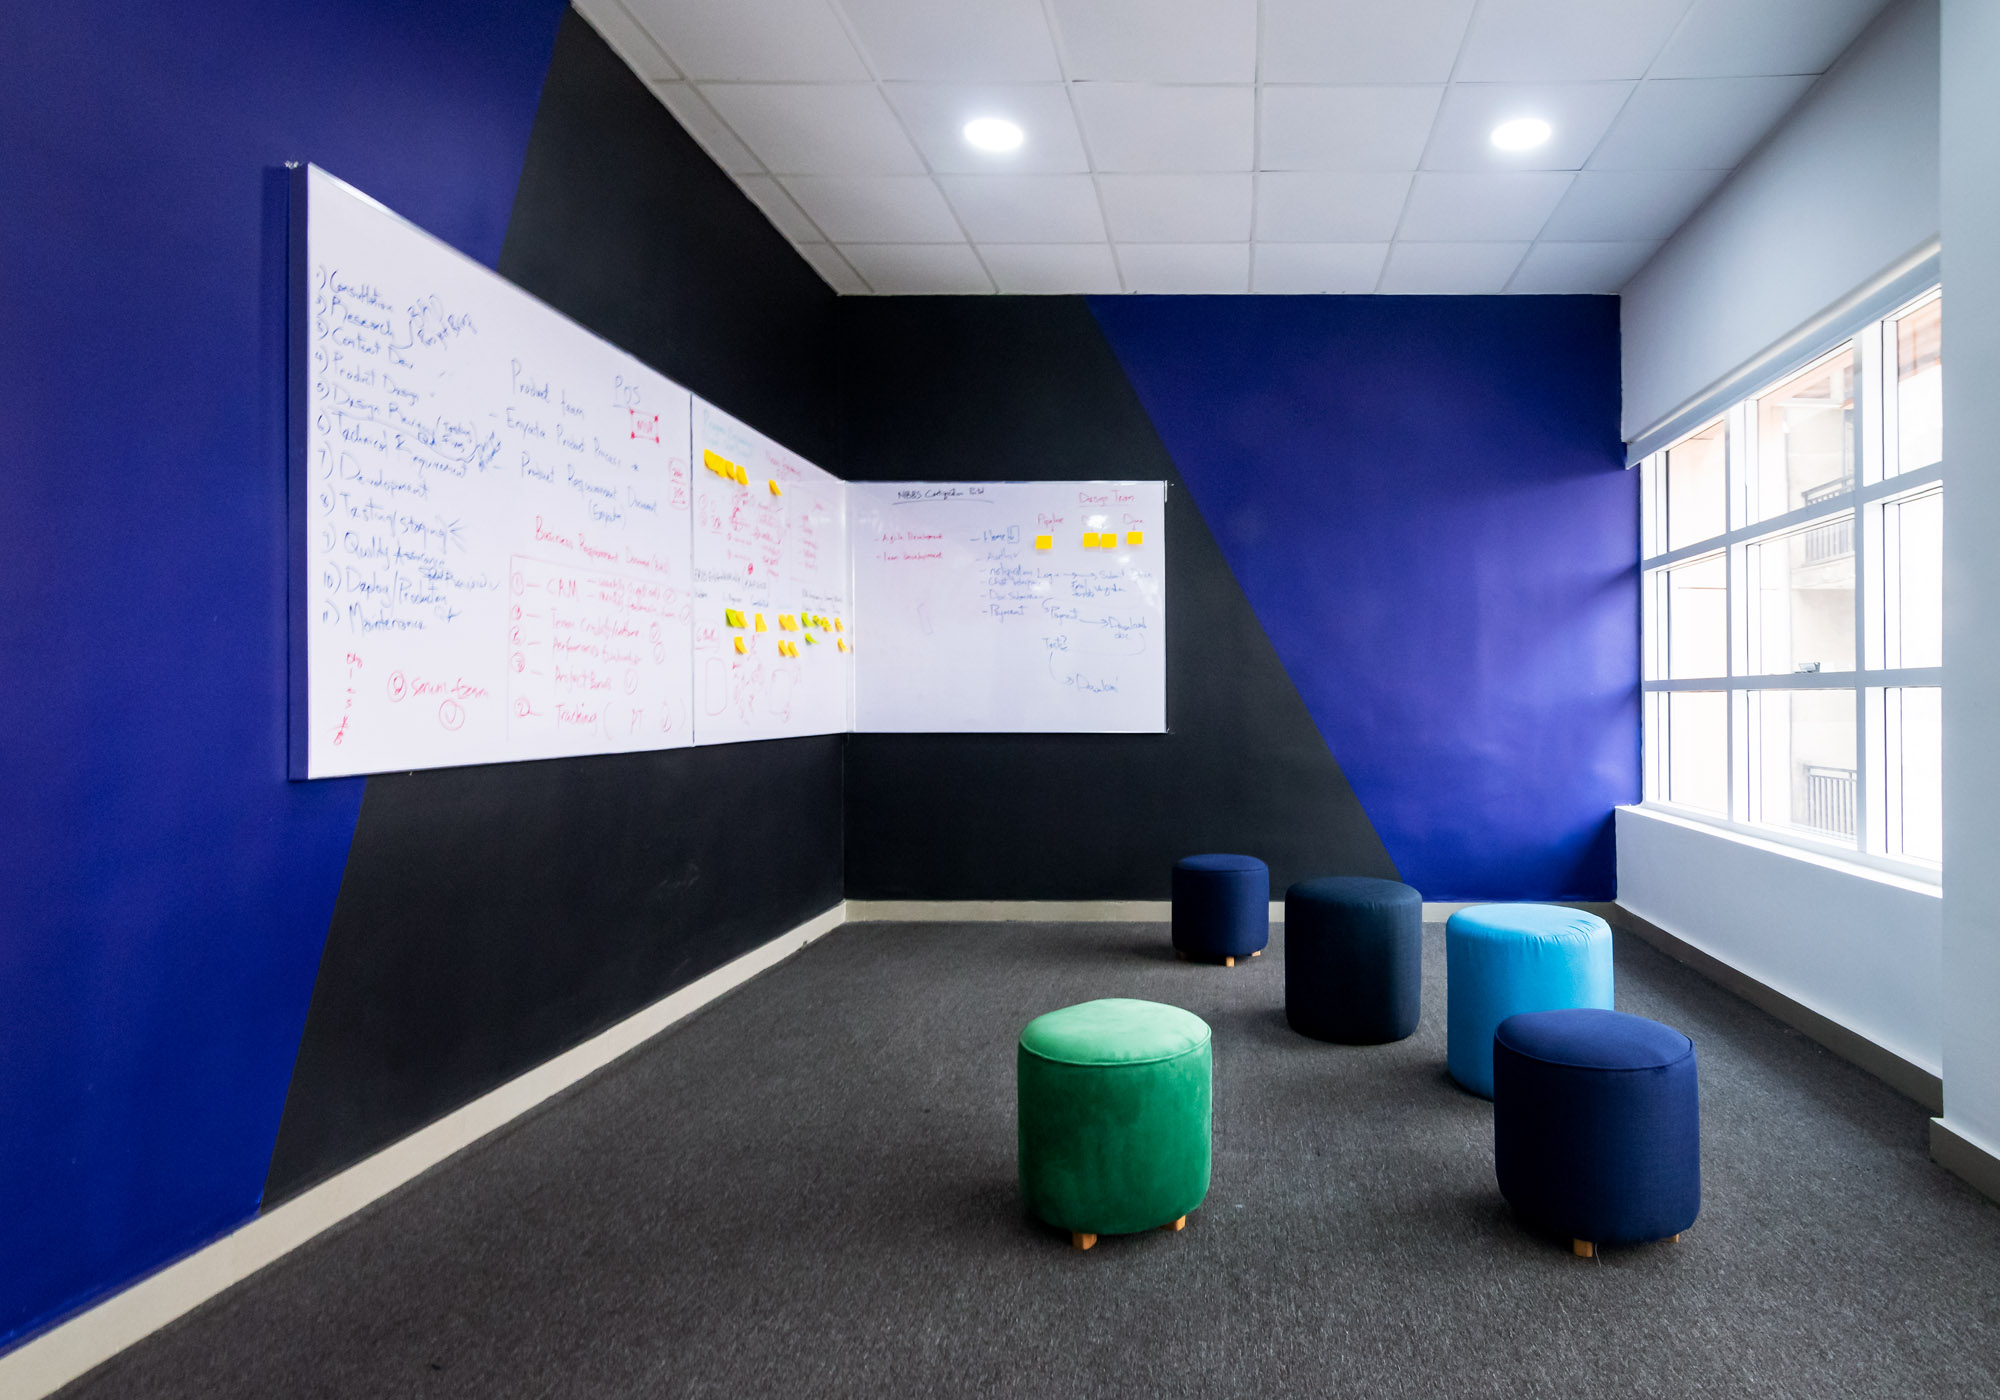 Huddle Space - Enyata Head Office designed by Micdee Designs. Photograph: Ruby's Polaroid